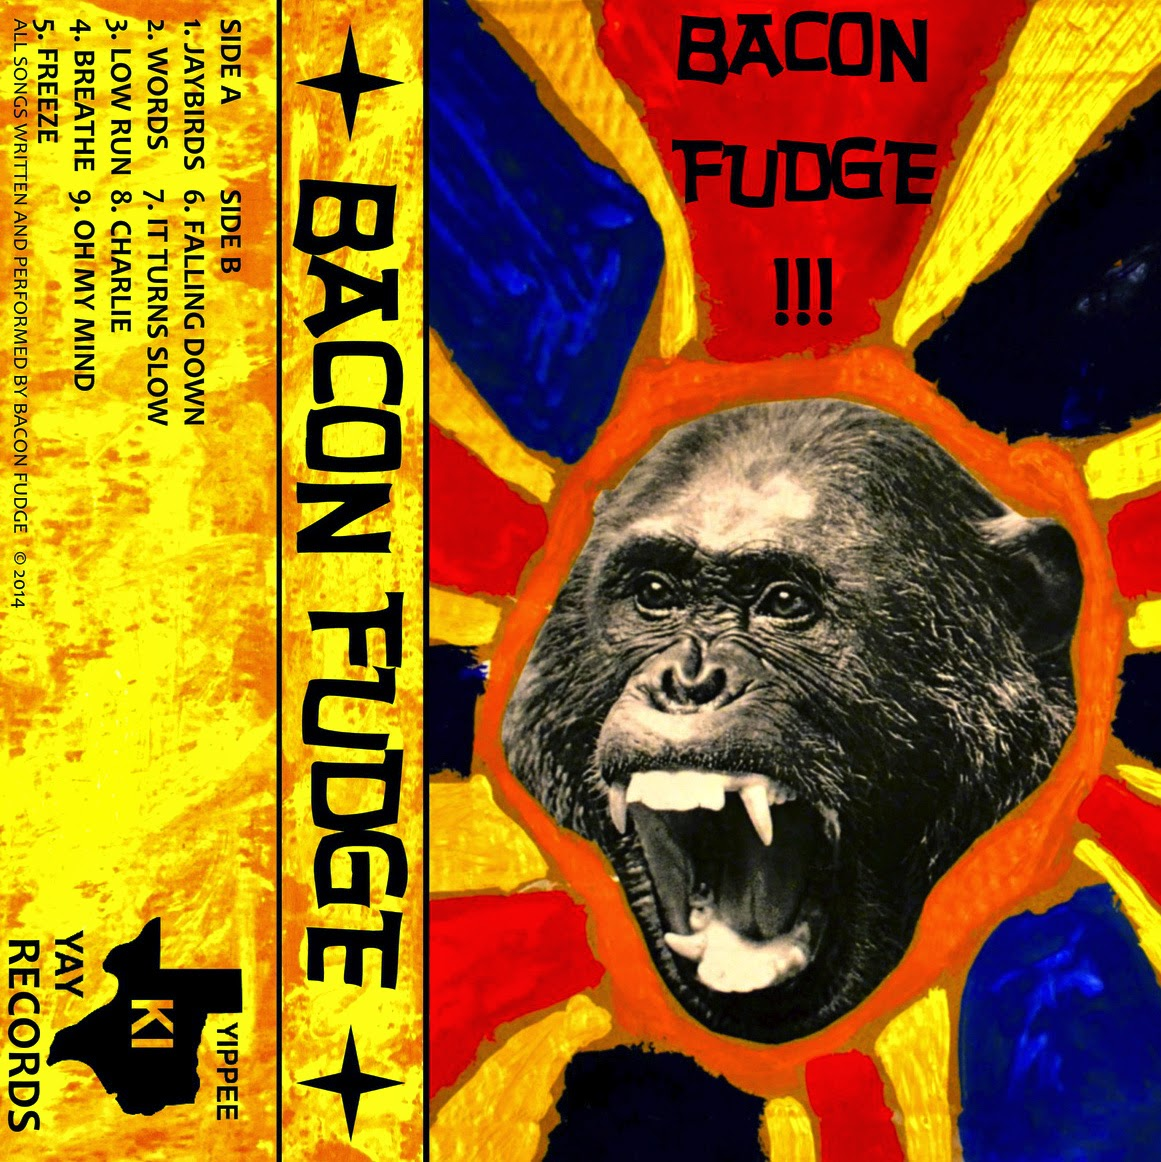 Bacon Fudge's Self Titled Album On Yippee Ki Yay Records - RAW - UNPROCESSED - NON CONTAMINATED GARAGE PUNK